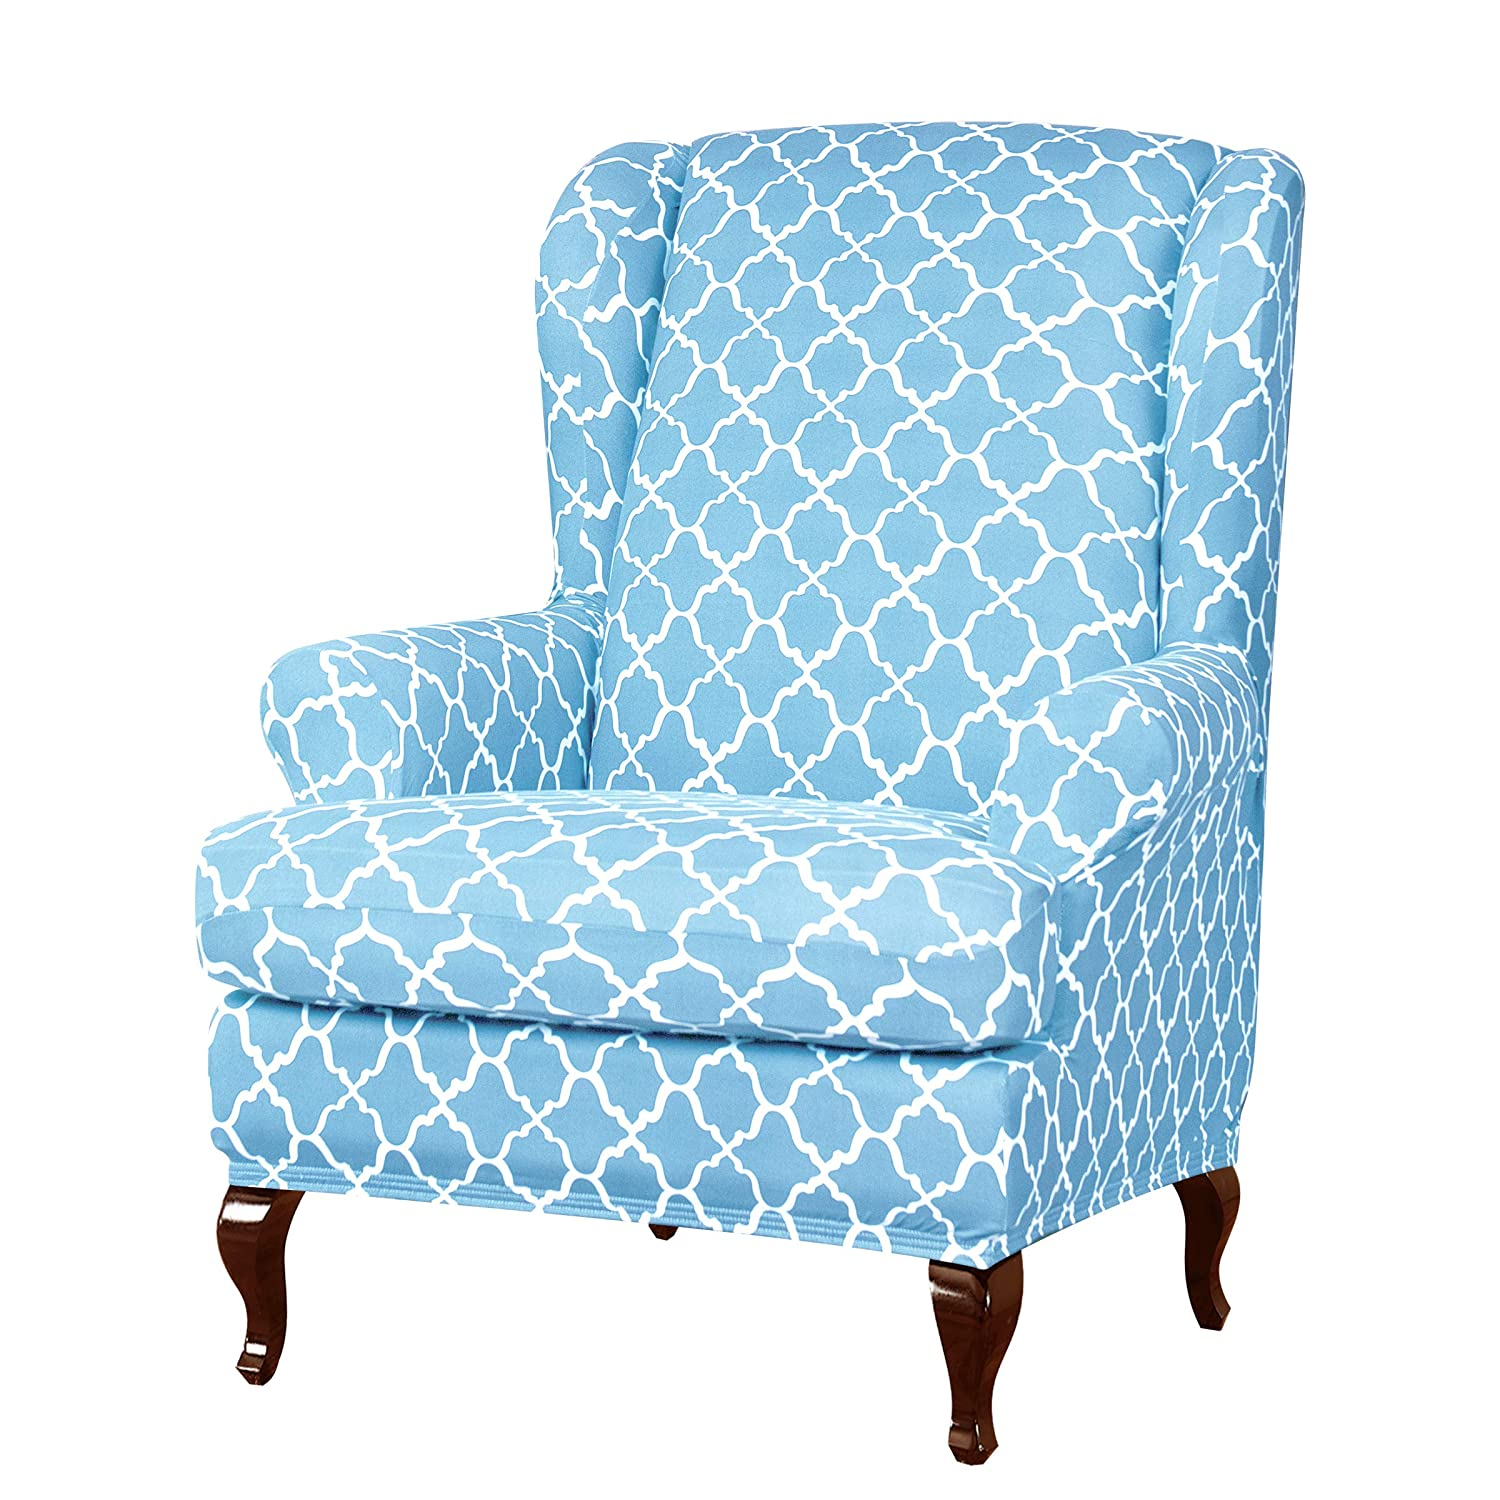 Subrtex 2pcs Wingback Chair Slipcovers Wing Chair Armchair Covers Detachable Spandex Printed Sofa Covers Furniture Protector(Blue)